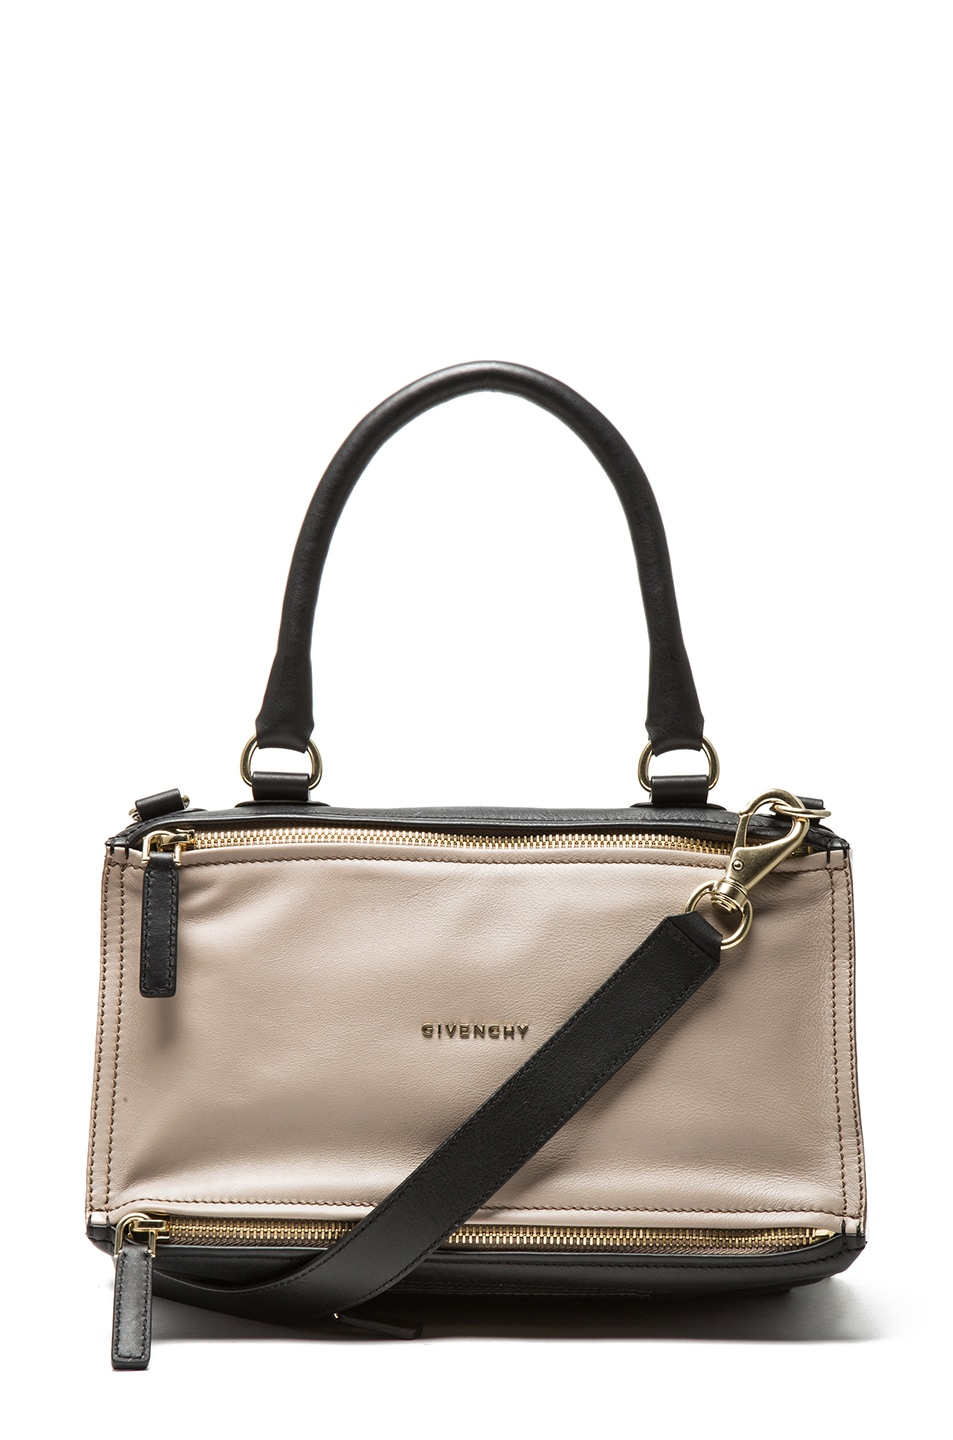 f7a263e815 Image 1 of Givenchy Medium Tri Color Pandora in Taupe